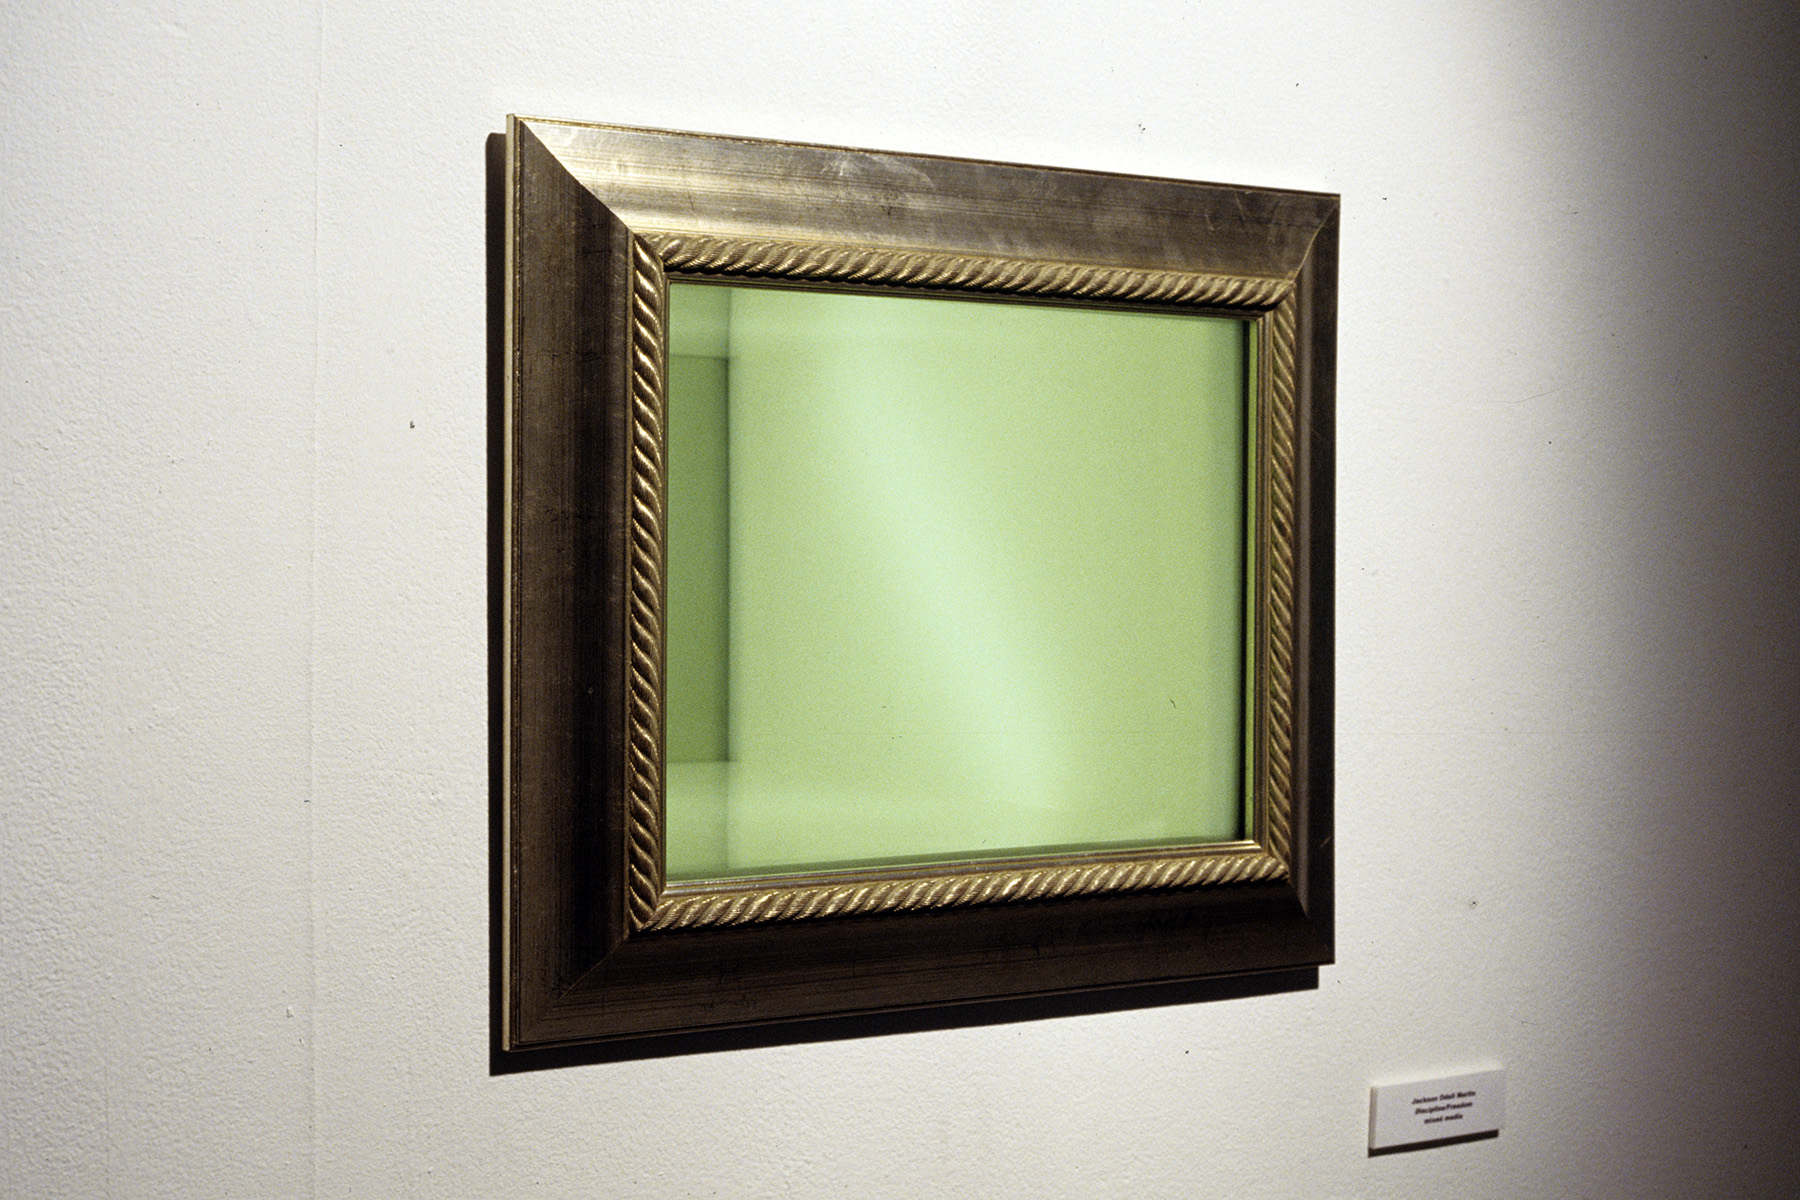 Freedom/Discipline  / 2004 / Frames, mirrors, acrylic, lights / dimensions variable